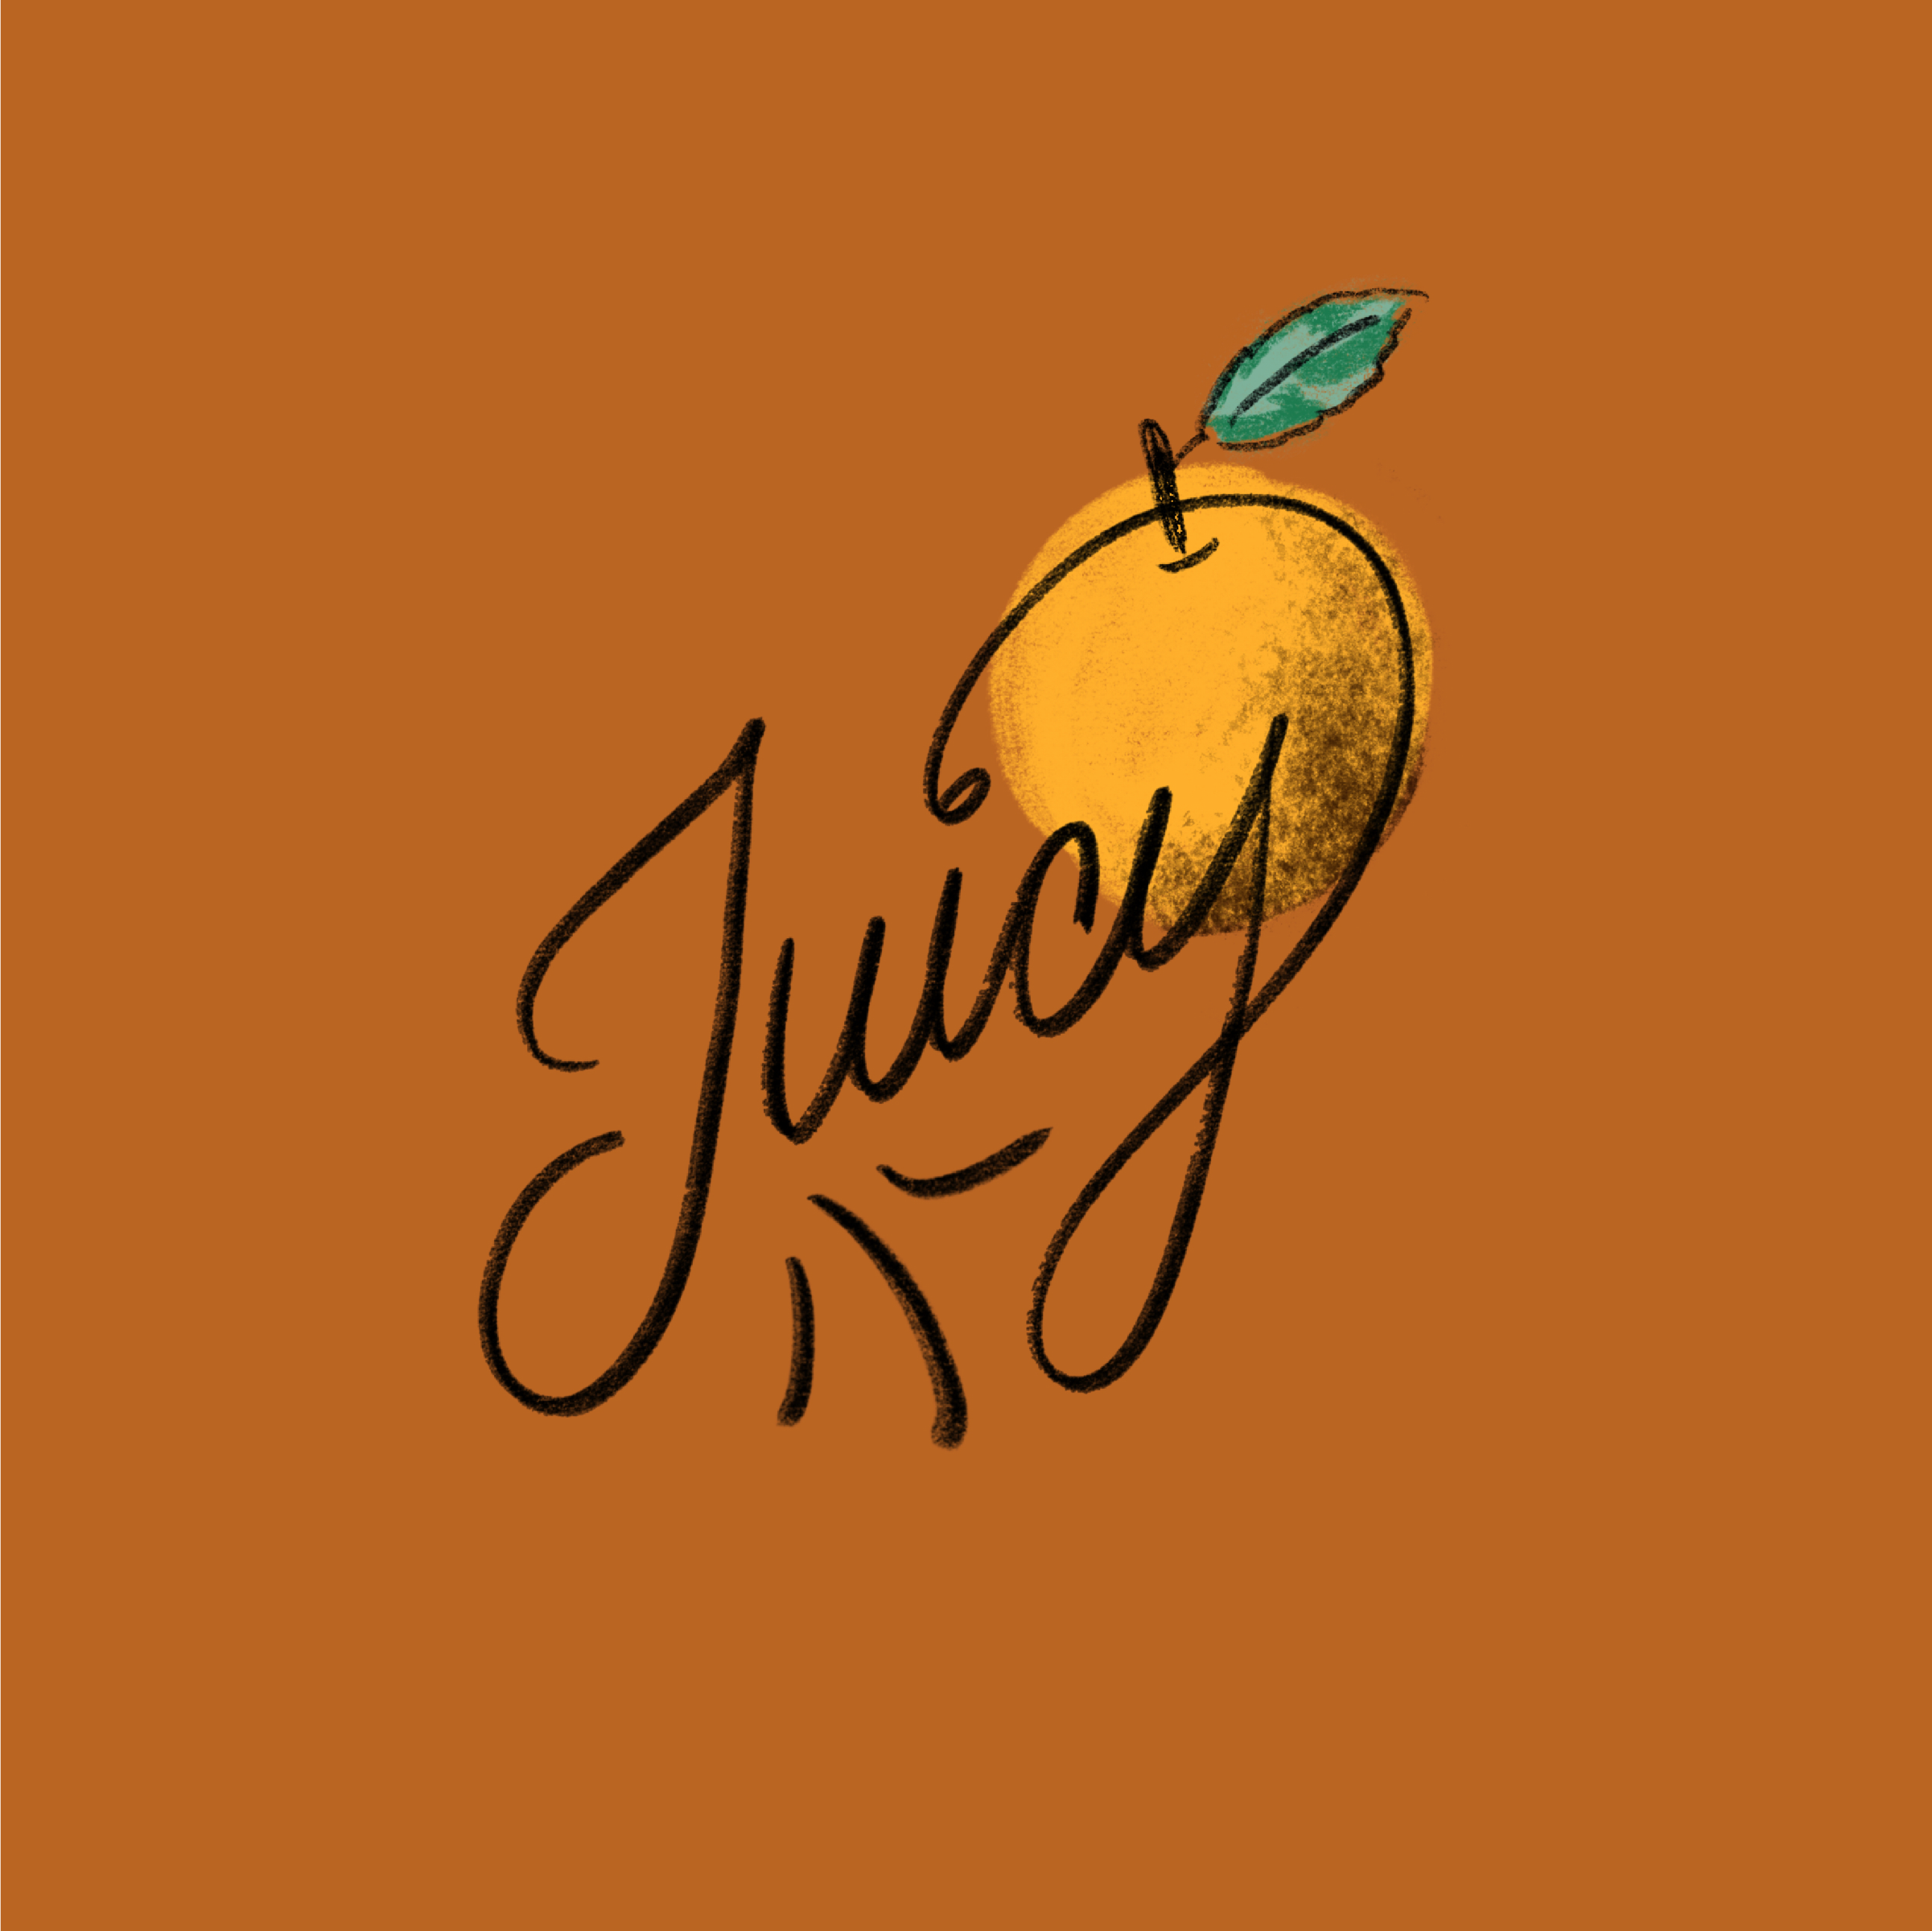 Juicy_graphics-01.png